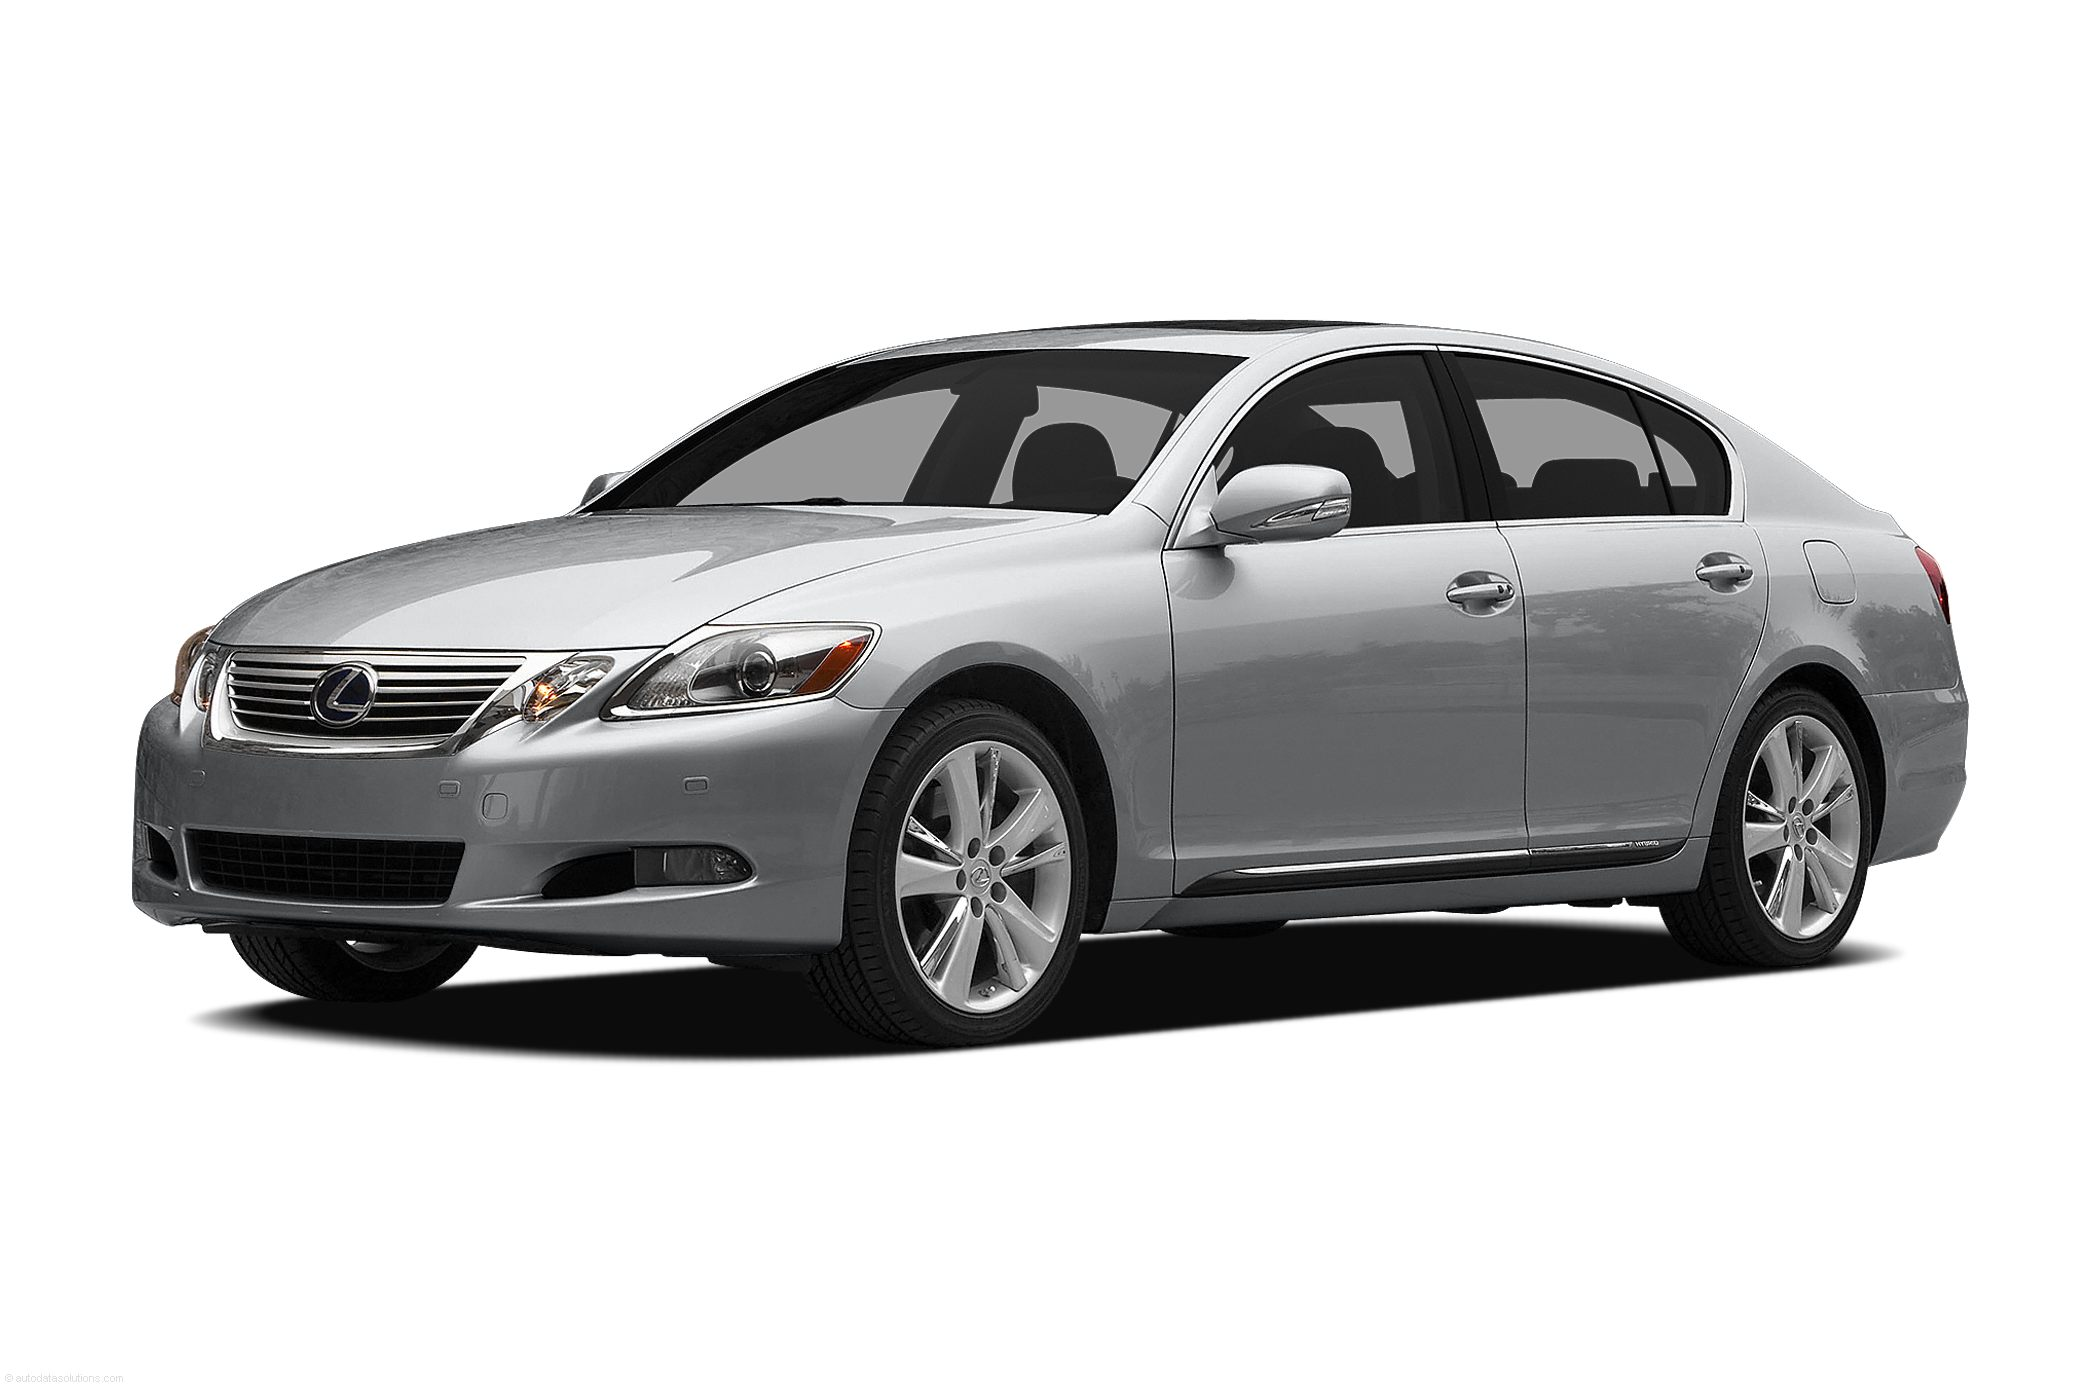 Lexus GS 450h 2011 photo - 5